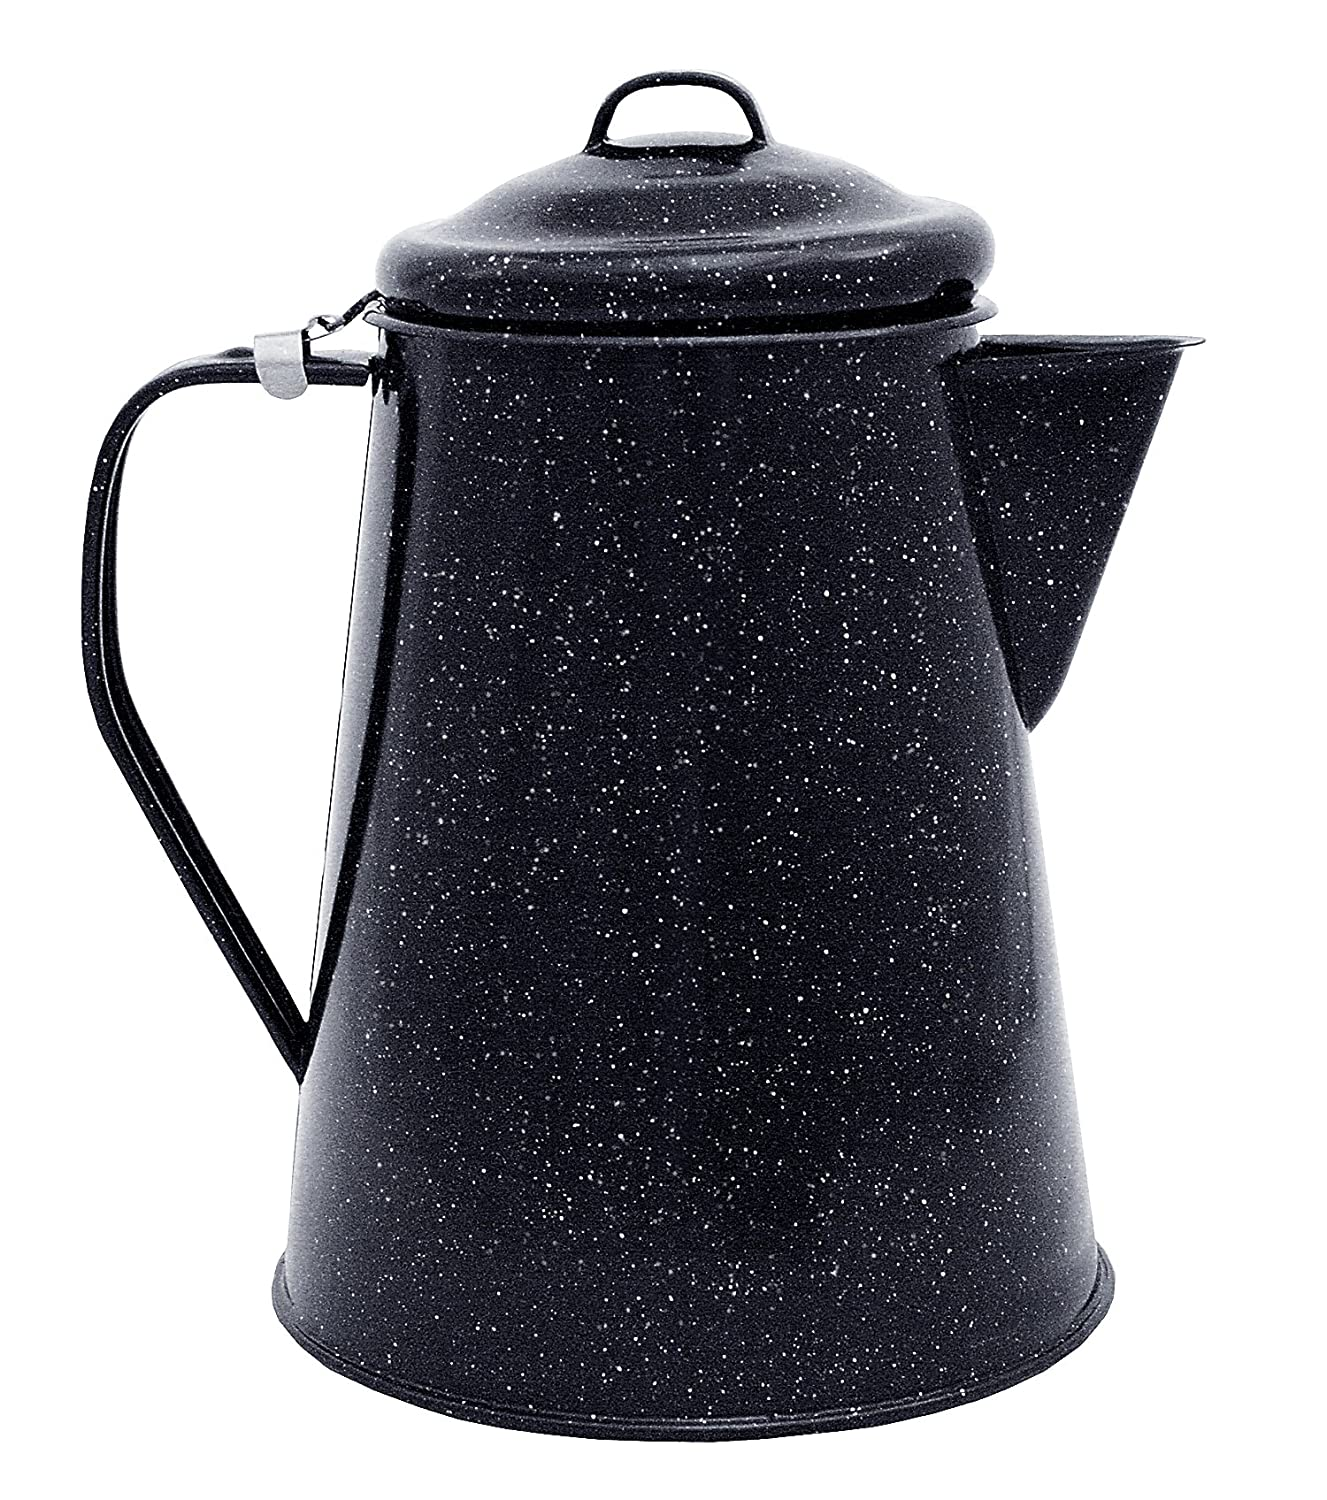 http://www.amazon.com/Granite-Ware-6006-1-3-Quart-Coffee/dp/B000RA3Z0K/ref=sr_1_6?ie=UTF8&qid=1444275955&sr=8-6&keywords=camping+percolator